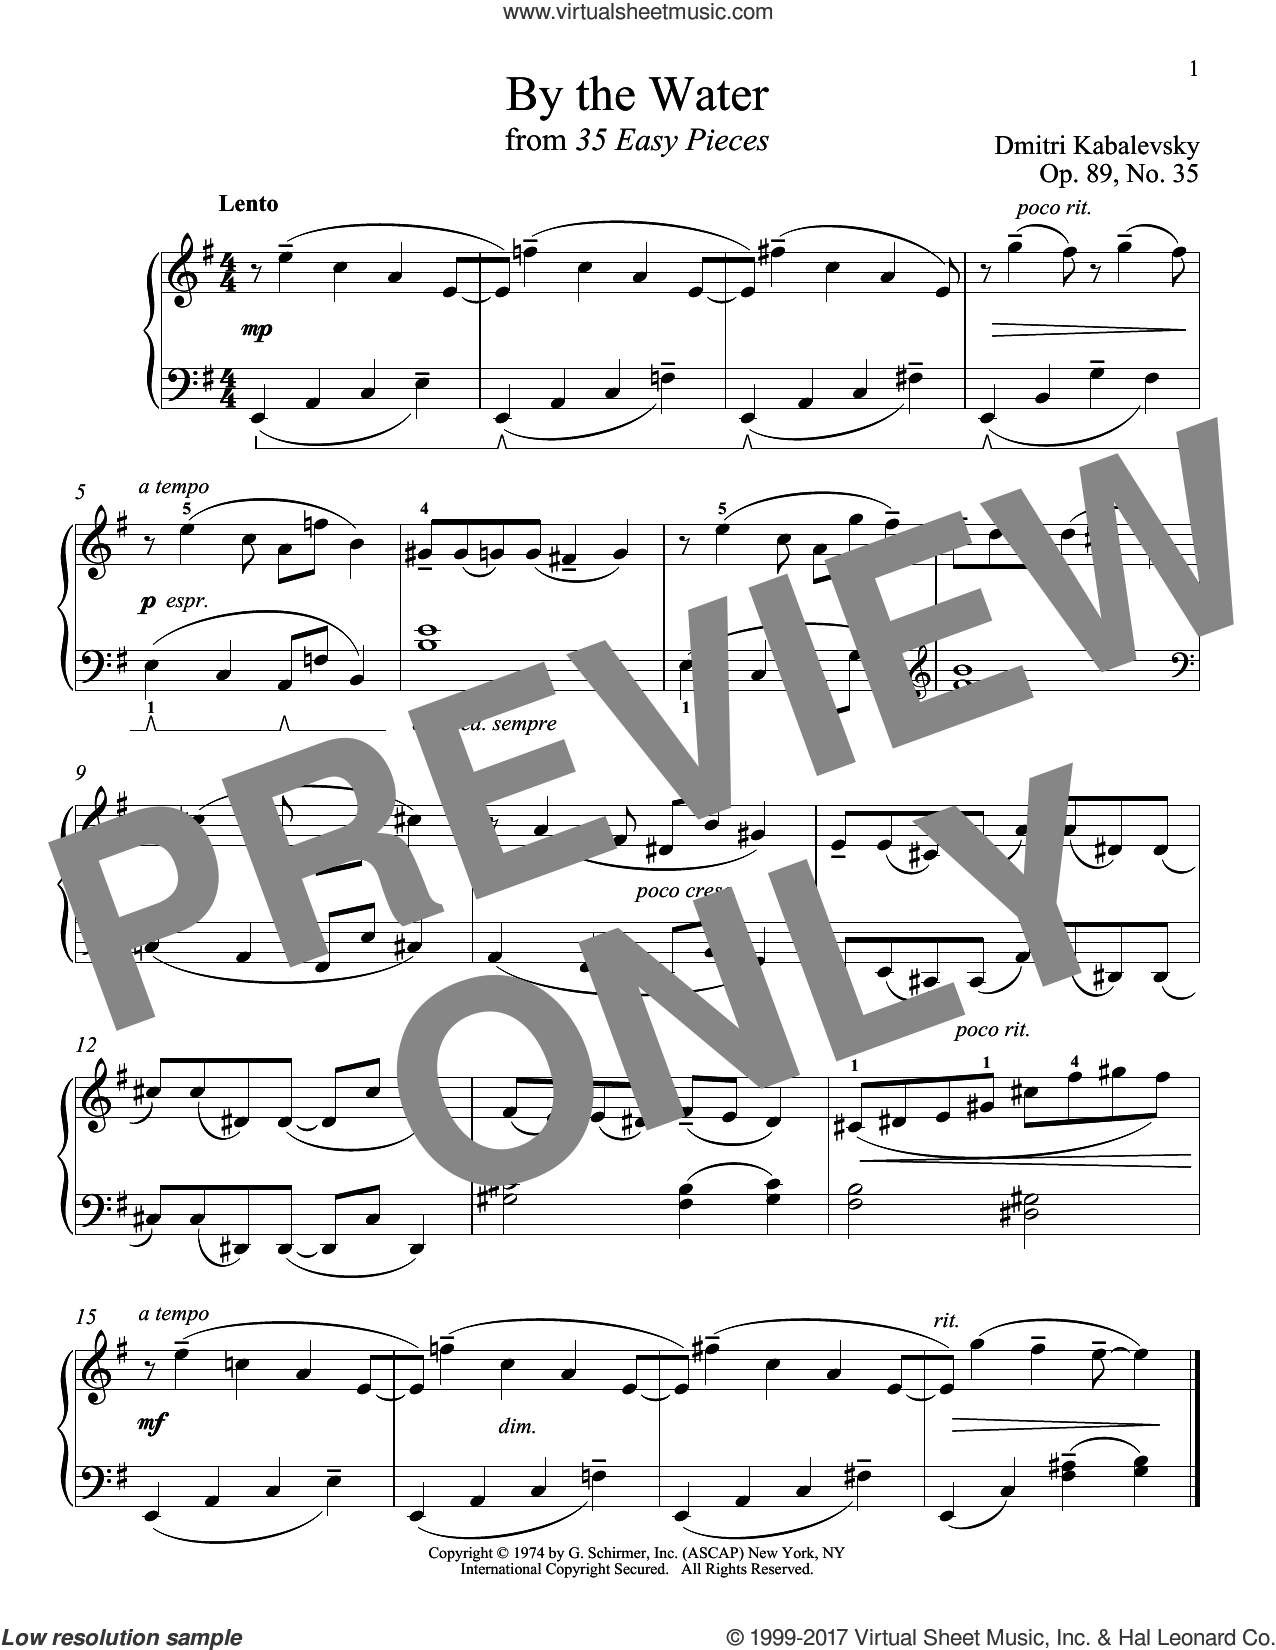 By The Water, Op. 89, No. 35 sheet music for piano solo by Dmitri Kabalevsky, classical score, intermediate skill level